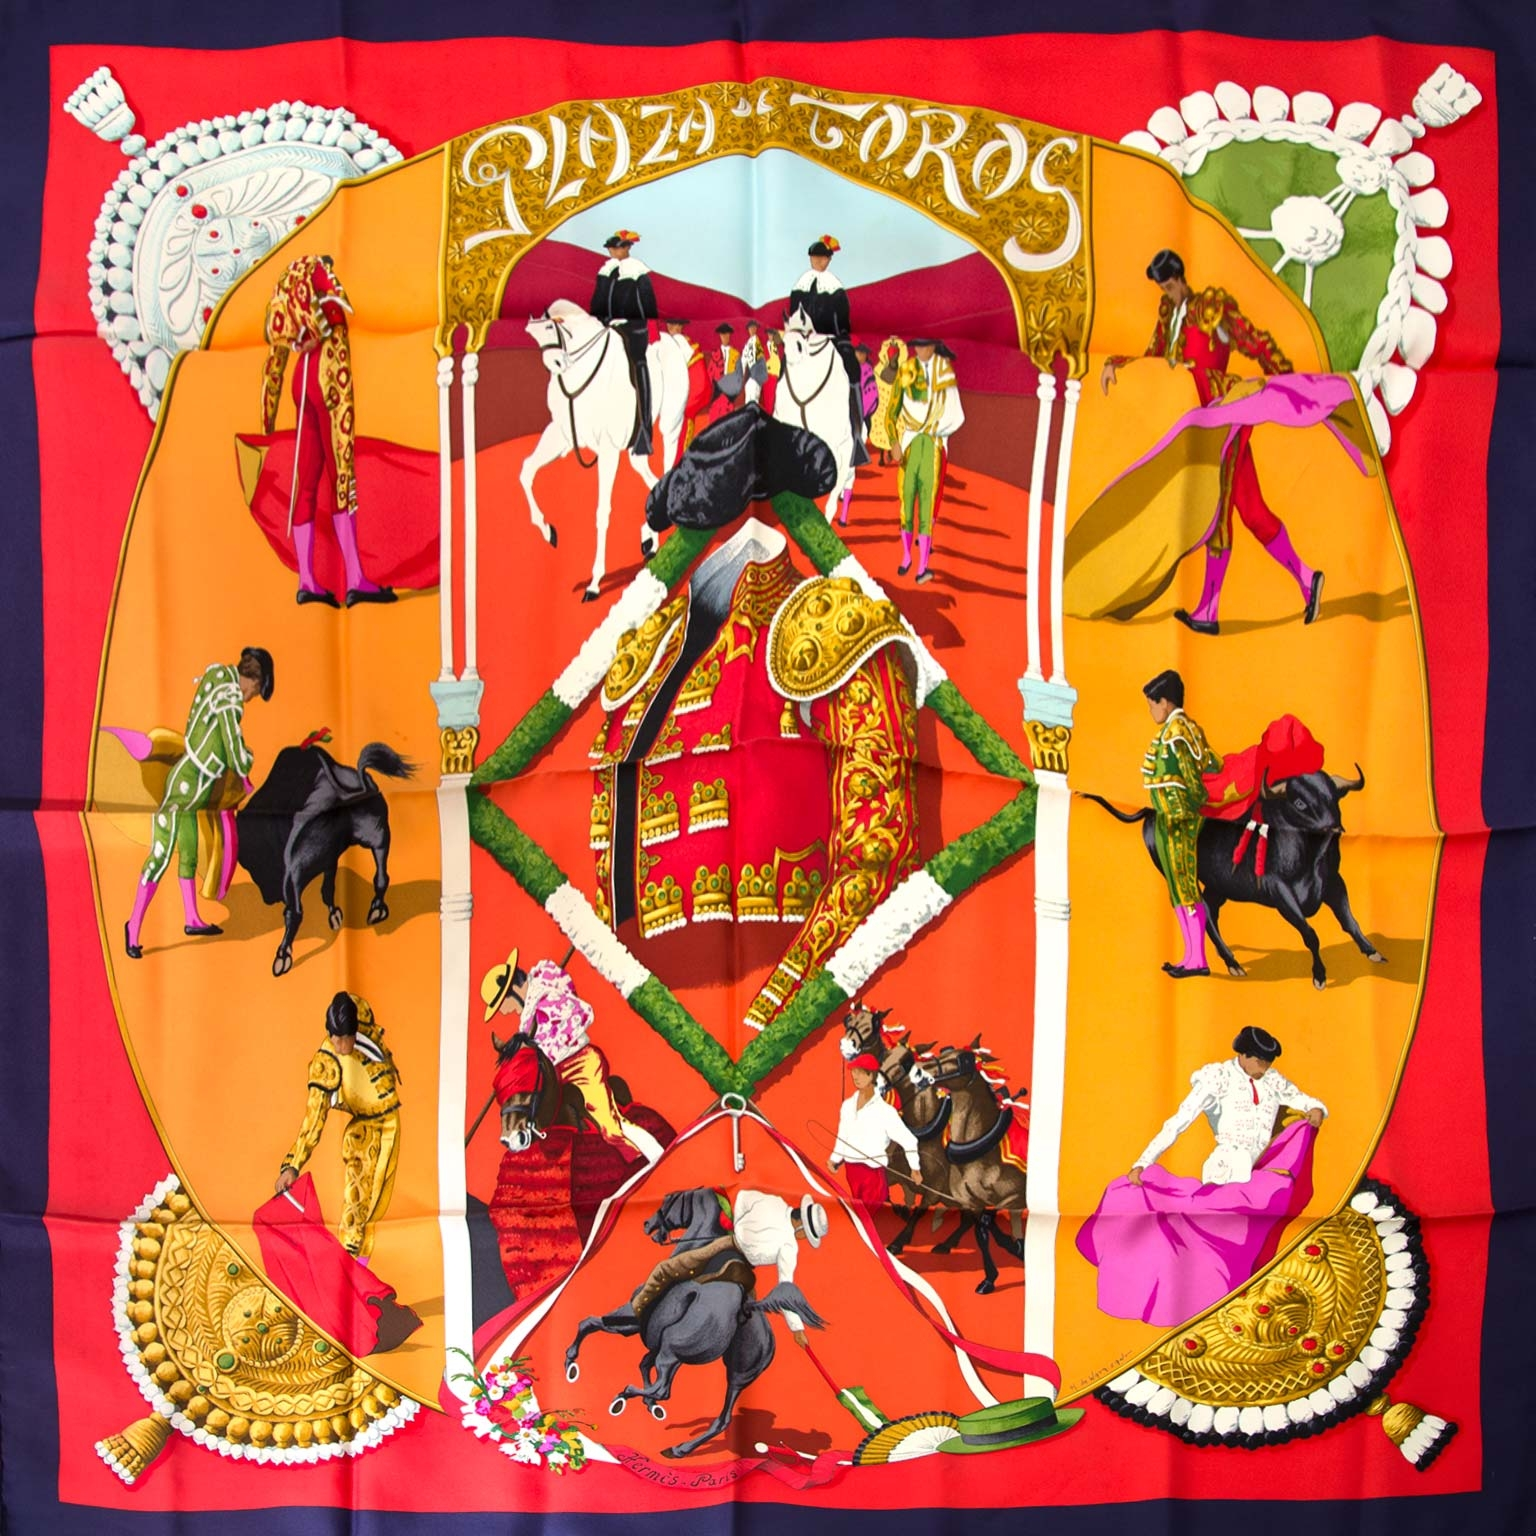 Hermes Carré Plaza de Toros Scarf  online at the best price